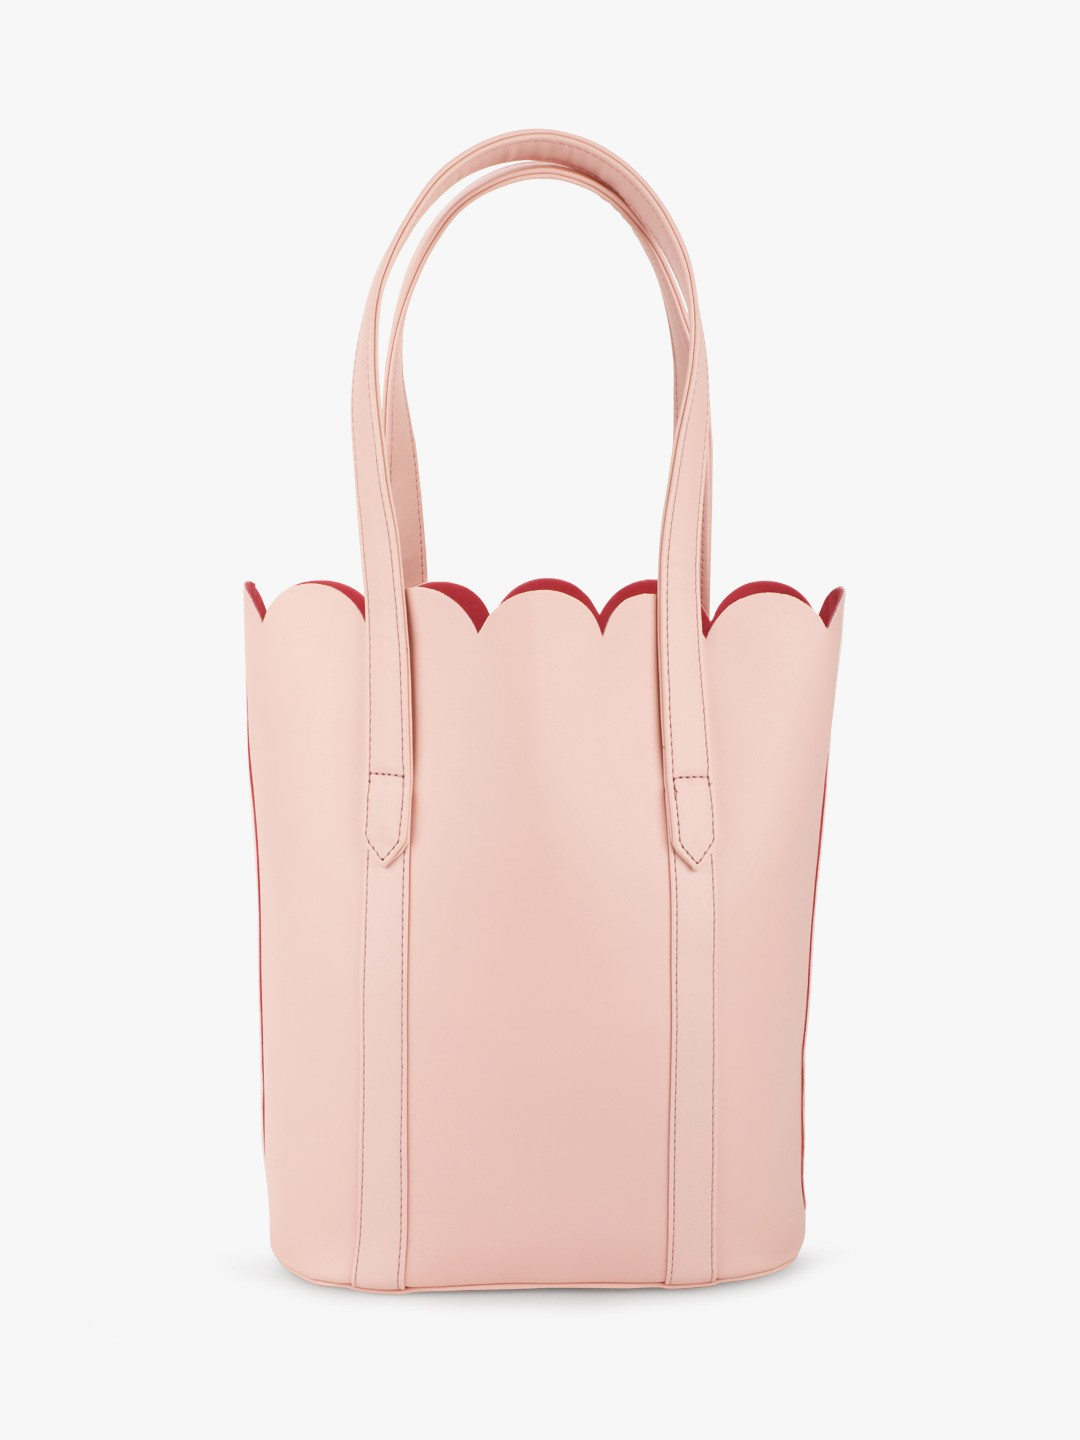 Gusto Pink Scalloped Tote Bag With Buckle Detail 1